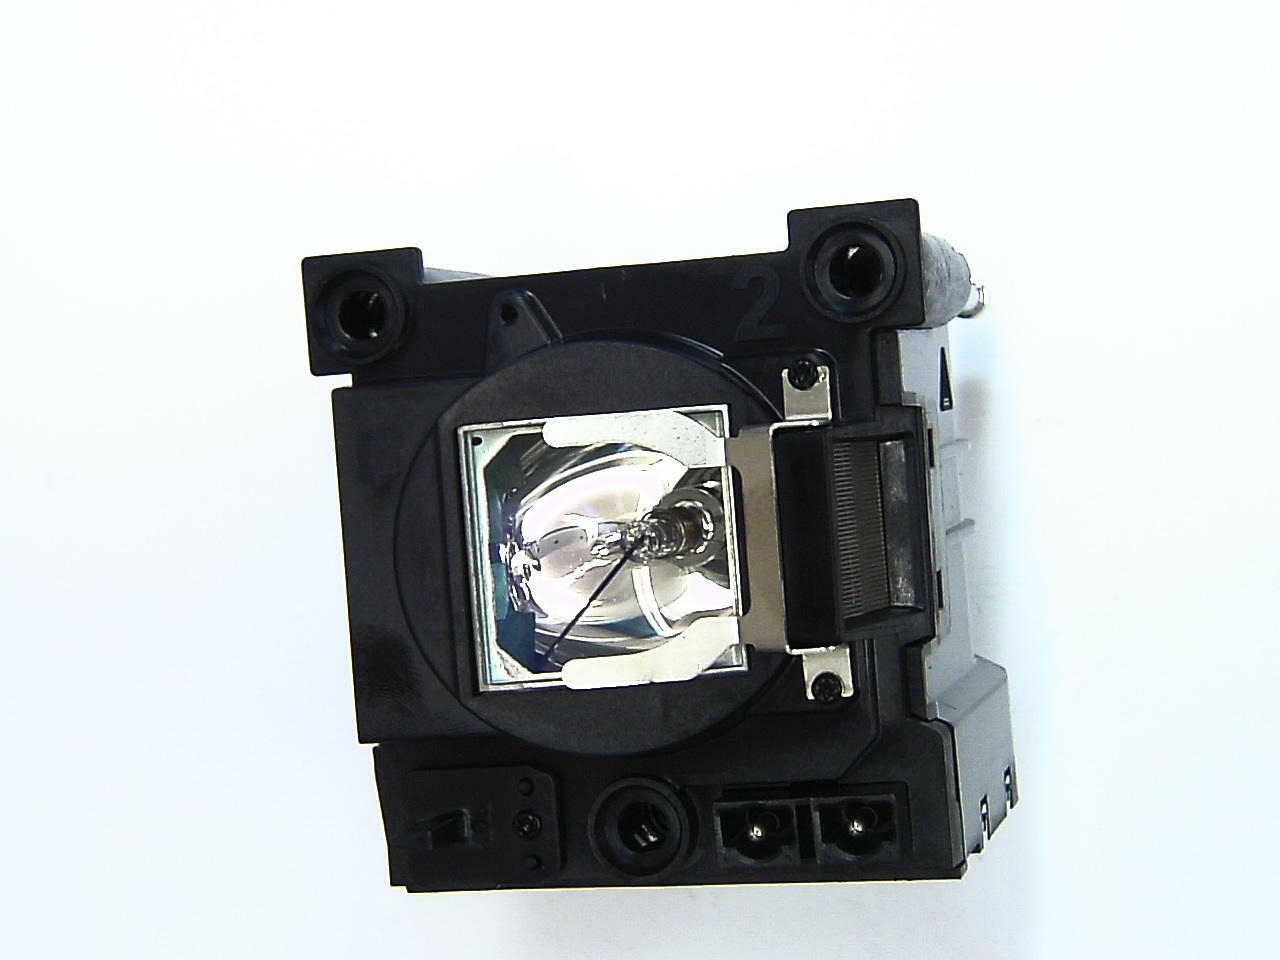 Original  Lámpara For PROJECTIONDESIGN F85 (Lamp 2) Proyector.